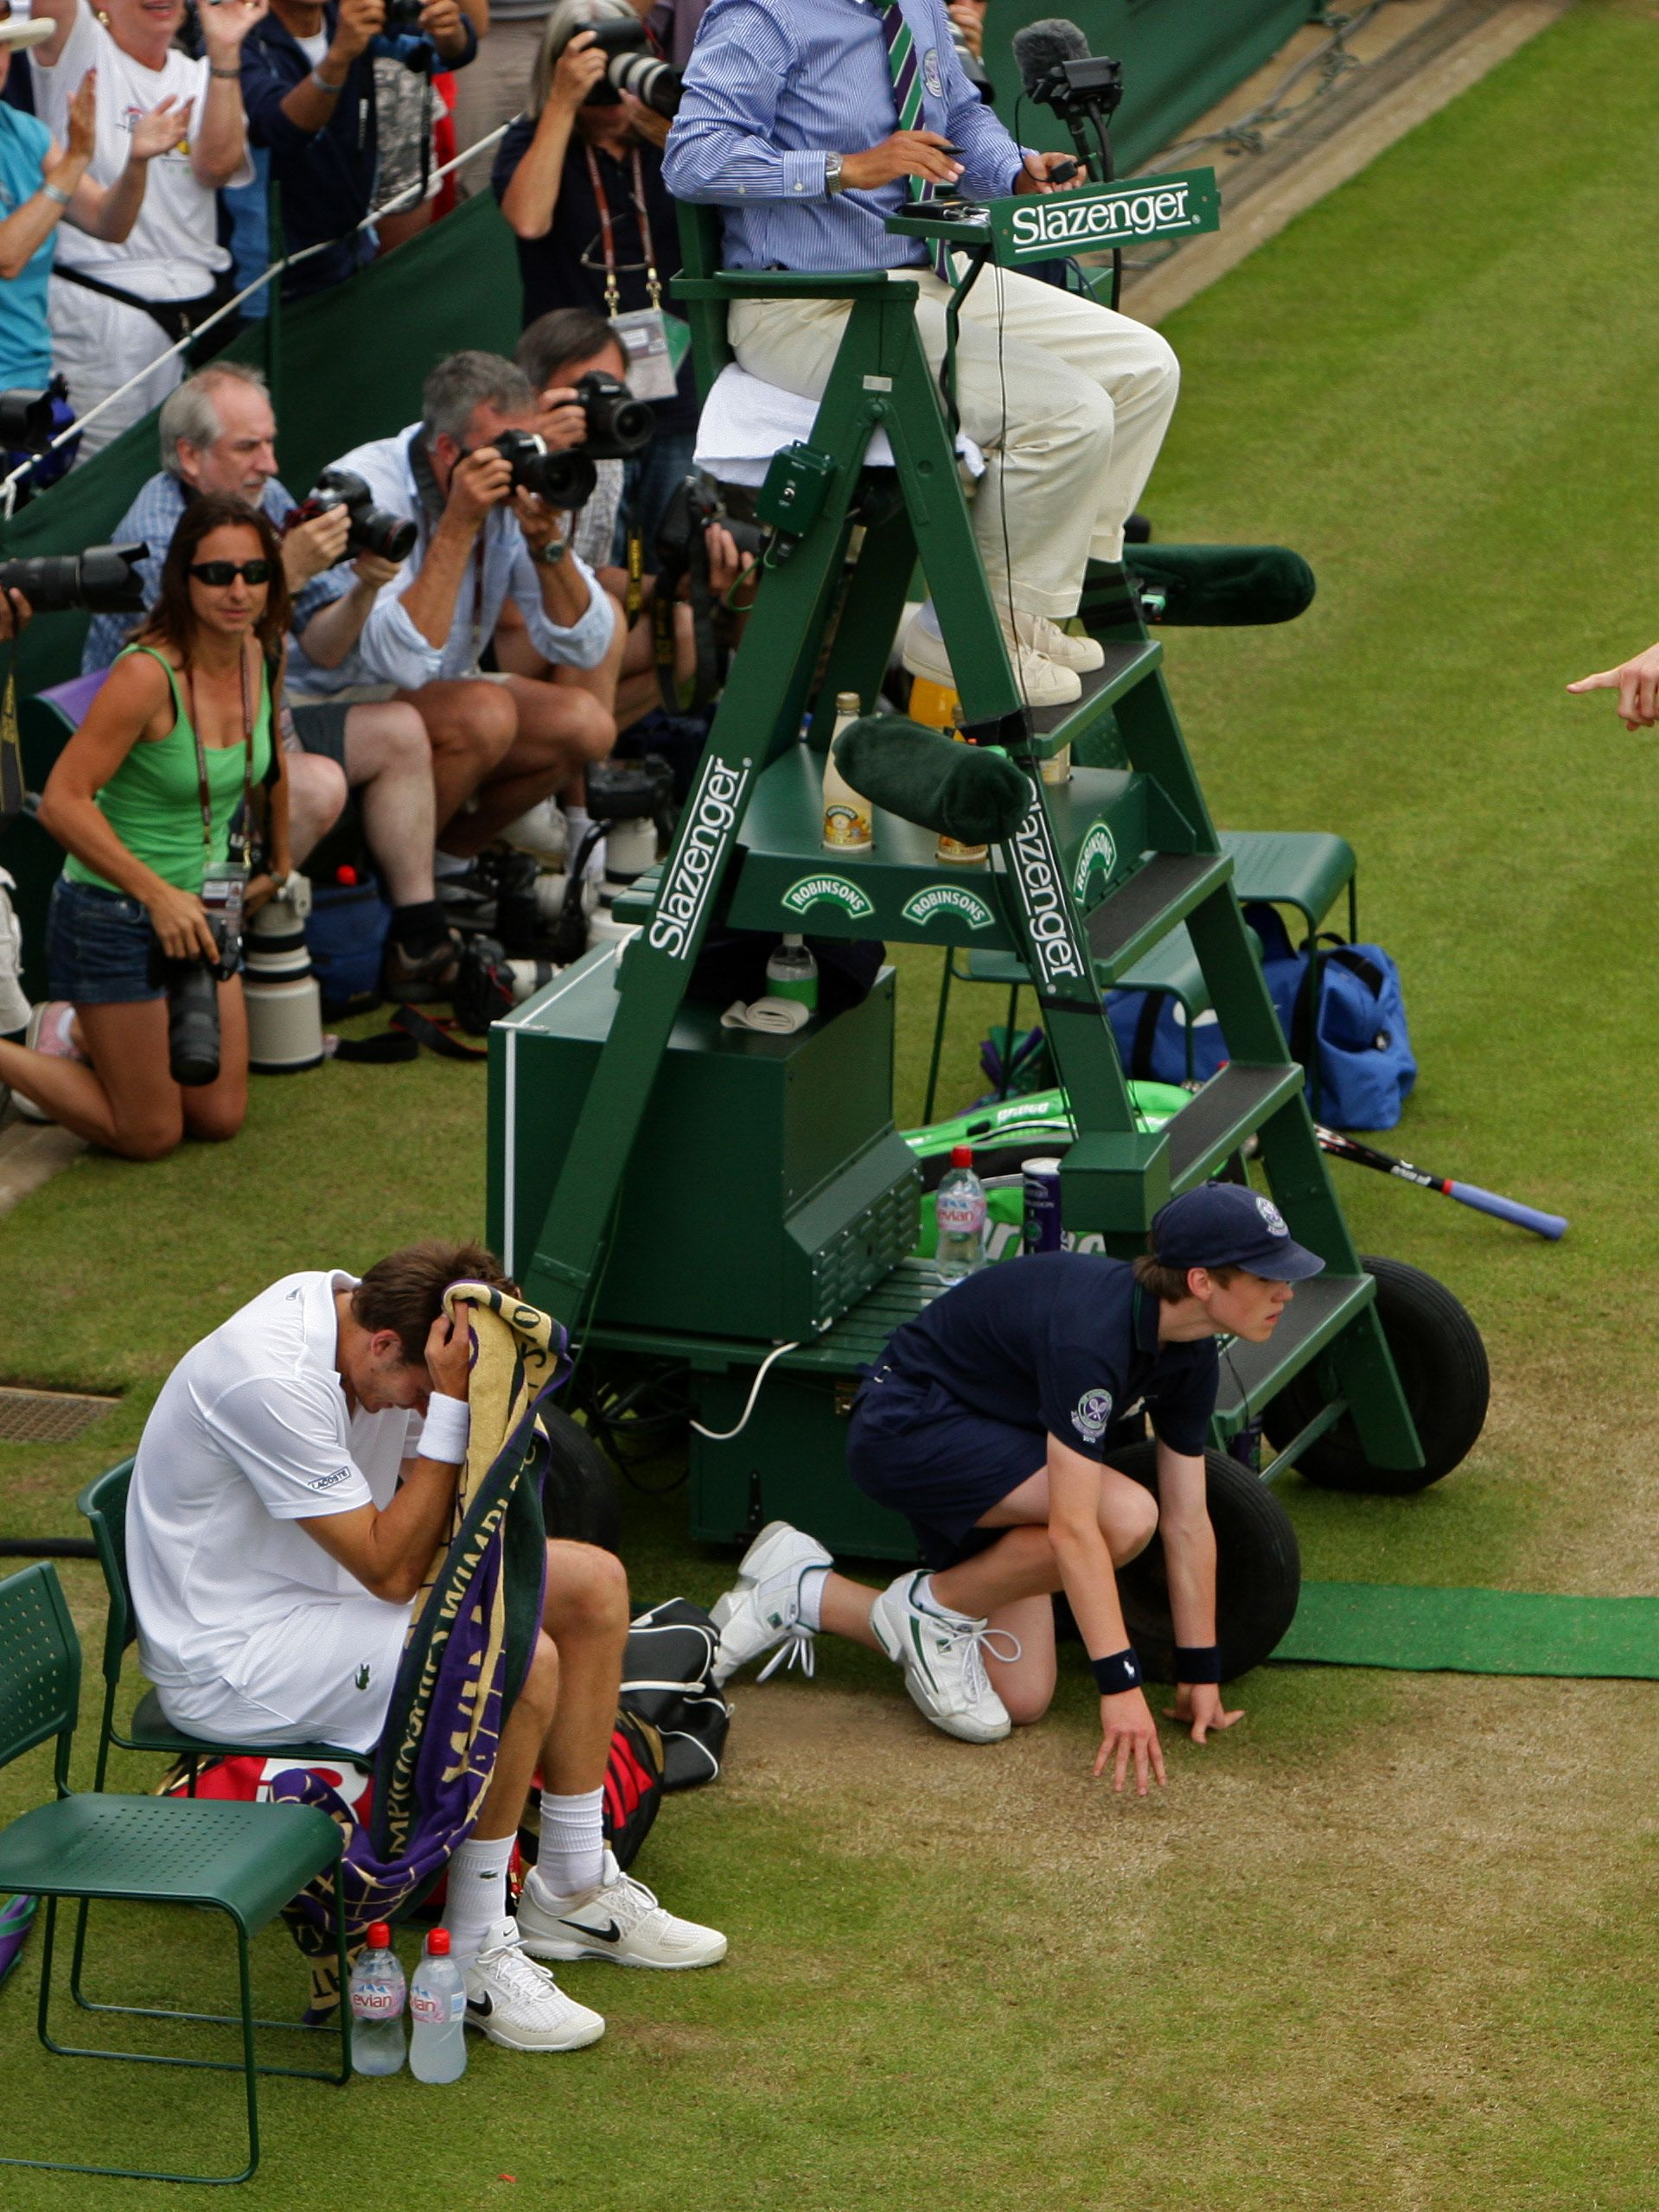 Mahut was heartbroken in defeat and suffered another defeat when the pair were drawn to face each other the following year. The 2011 clash ended 7-6 6-2 7-6, took a full nine hours less and featured 149 fewer games.